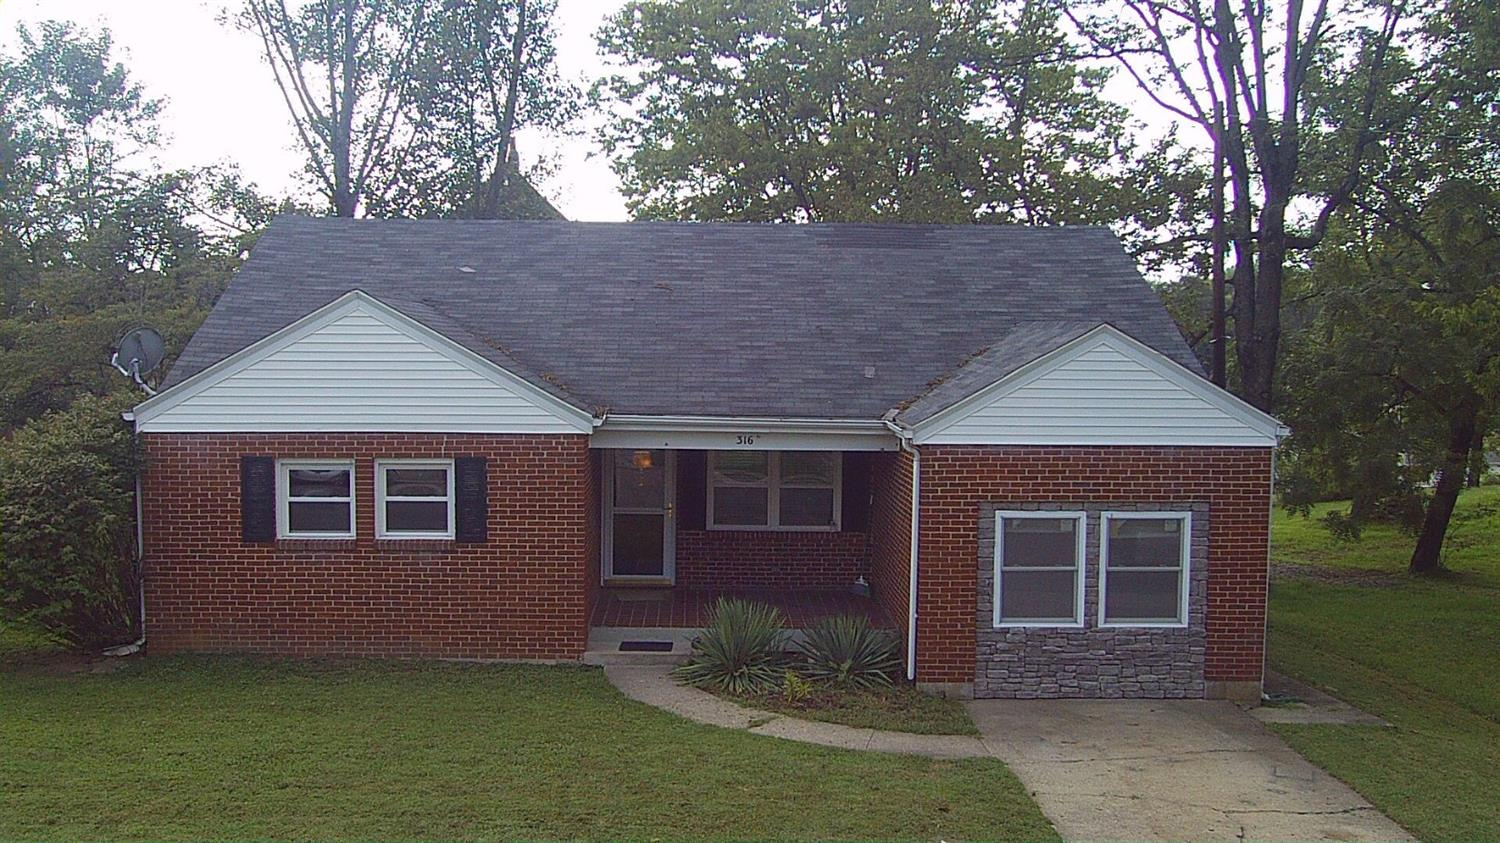 Photo 1 for 316 N Adams St Owenton, KY 40359